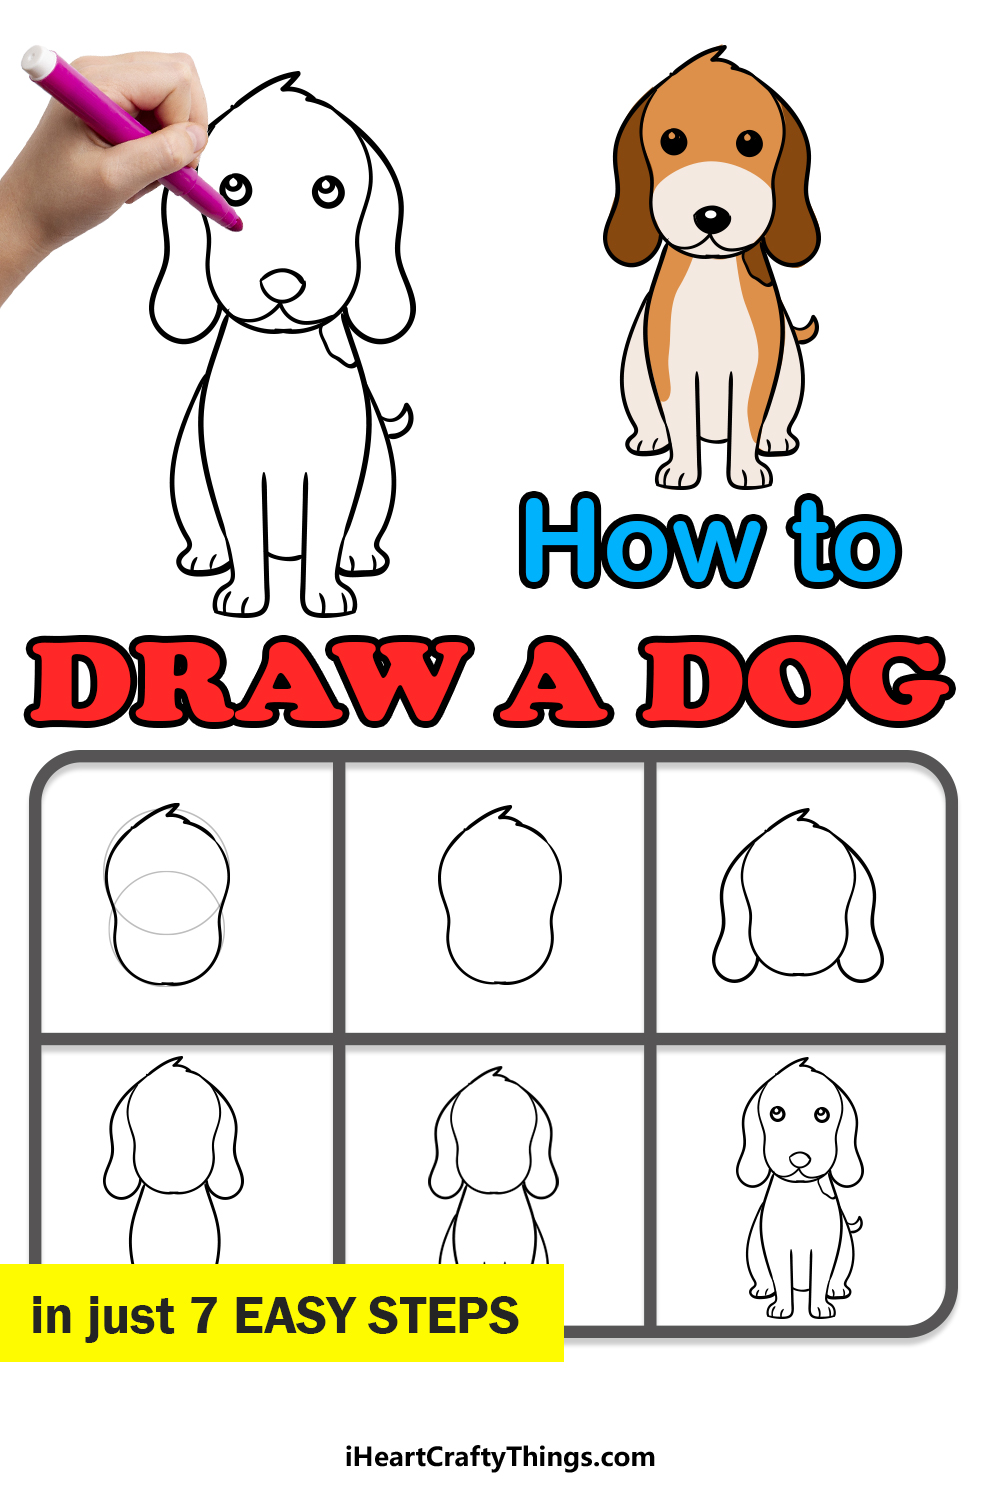 how to draw a dog in 7 easy steps